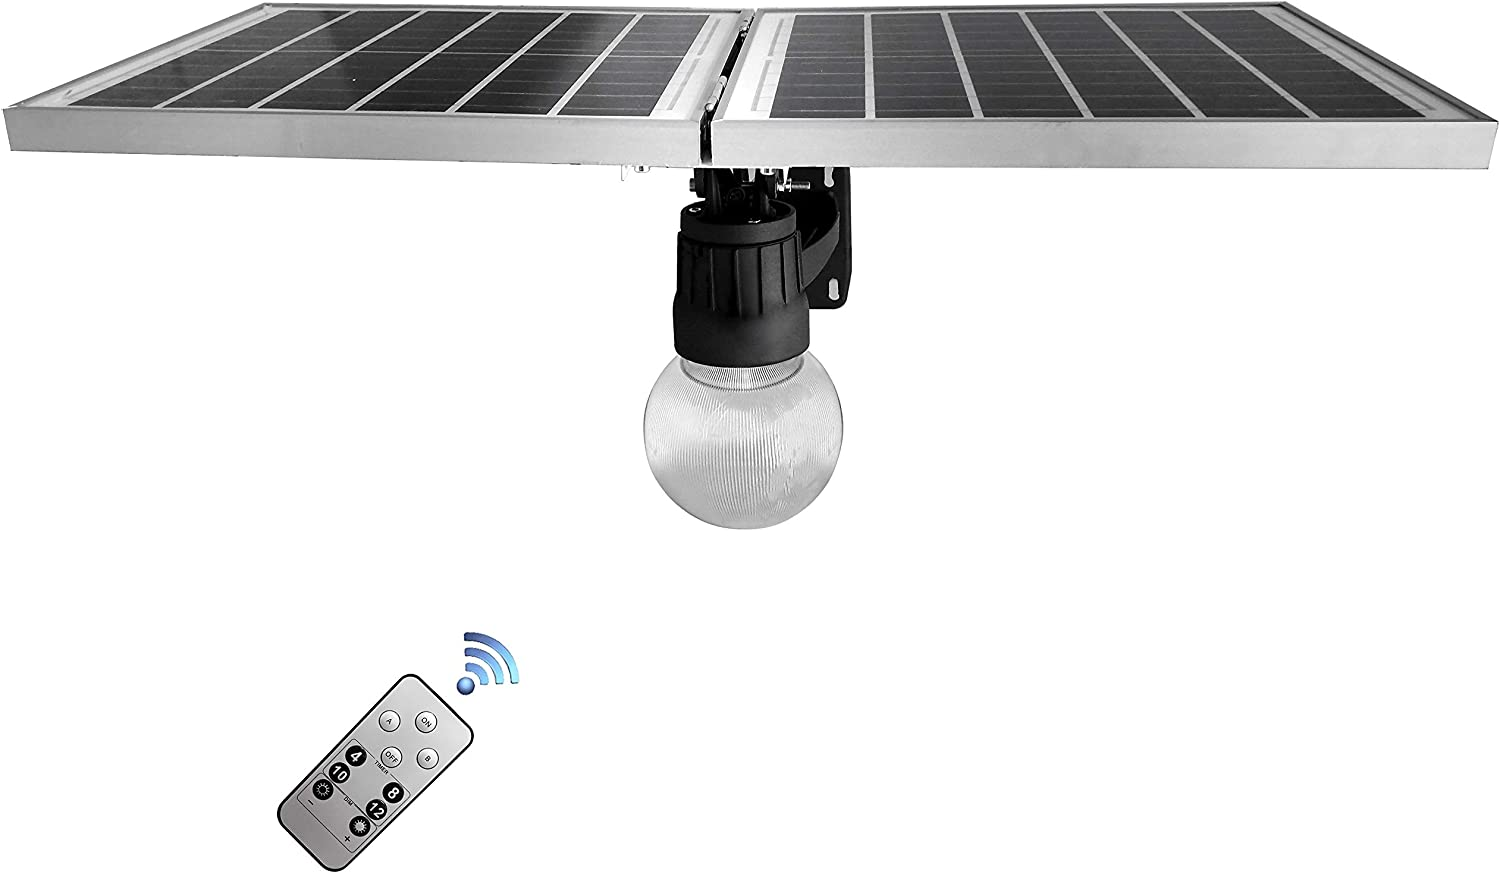 BestDrop Solar Street Flood Light Outdoor Wall LED Lamps Orb Garden All in One sunforce Dusk to Dawn Solar Smart Pathway Pole Lights for Garage Courtyard Backyard Patio Eaves Fence 150W (Mixed, 150)